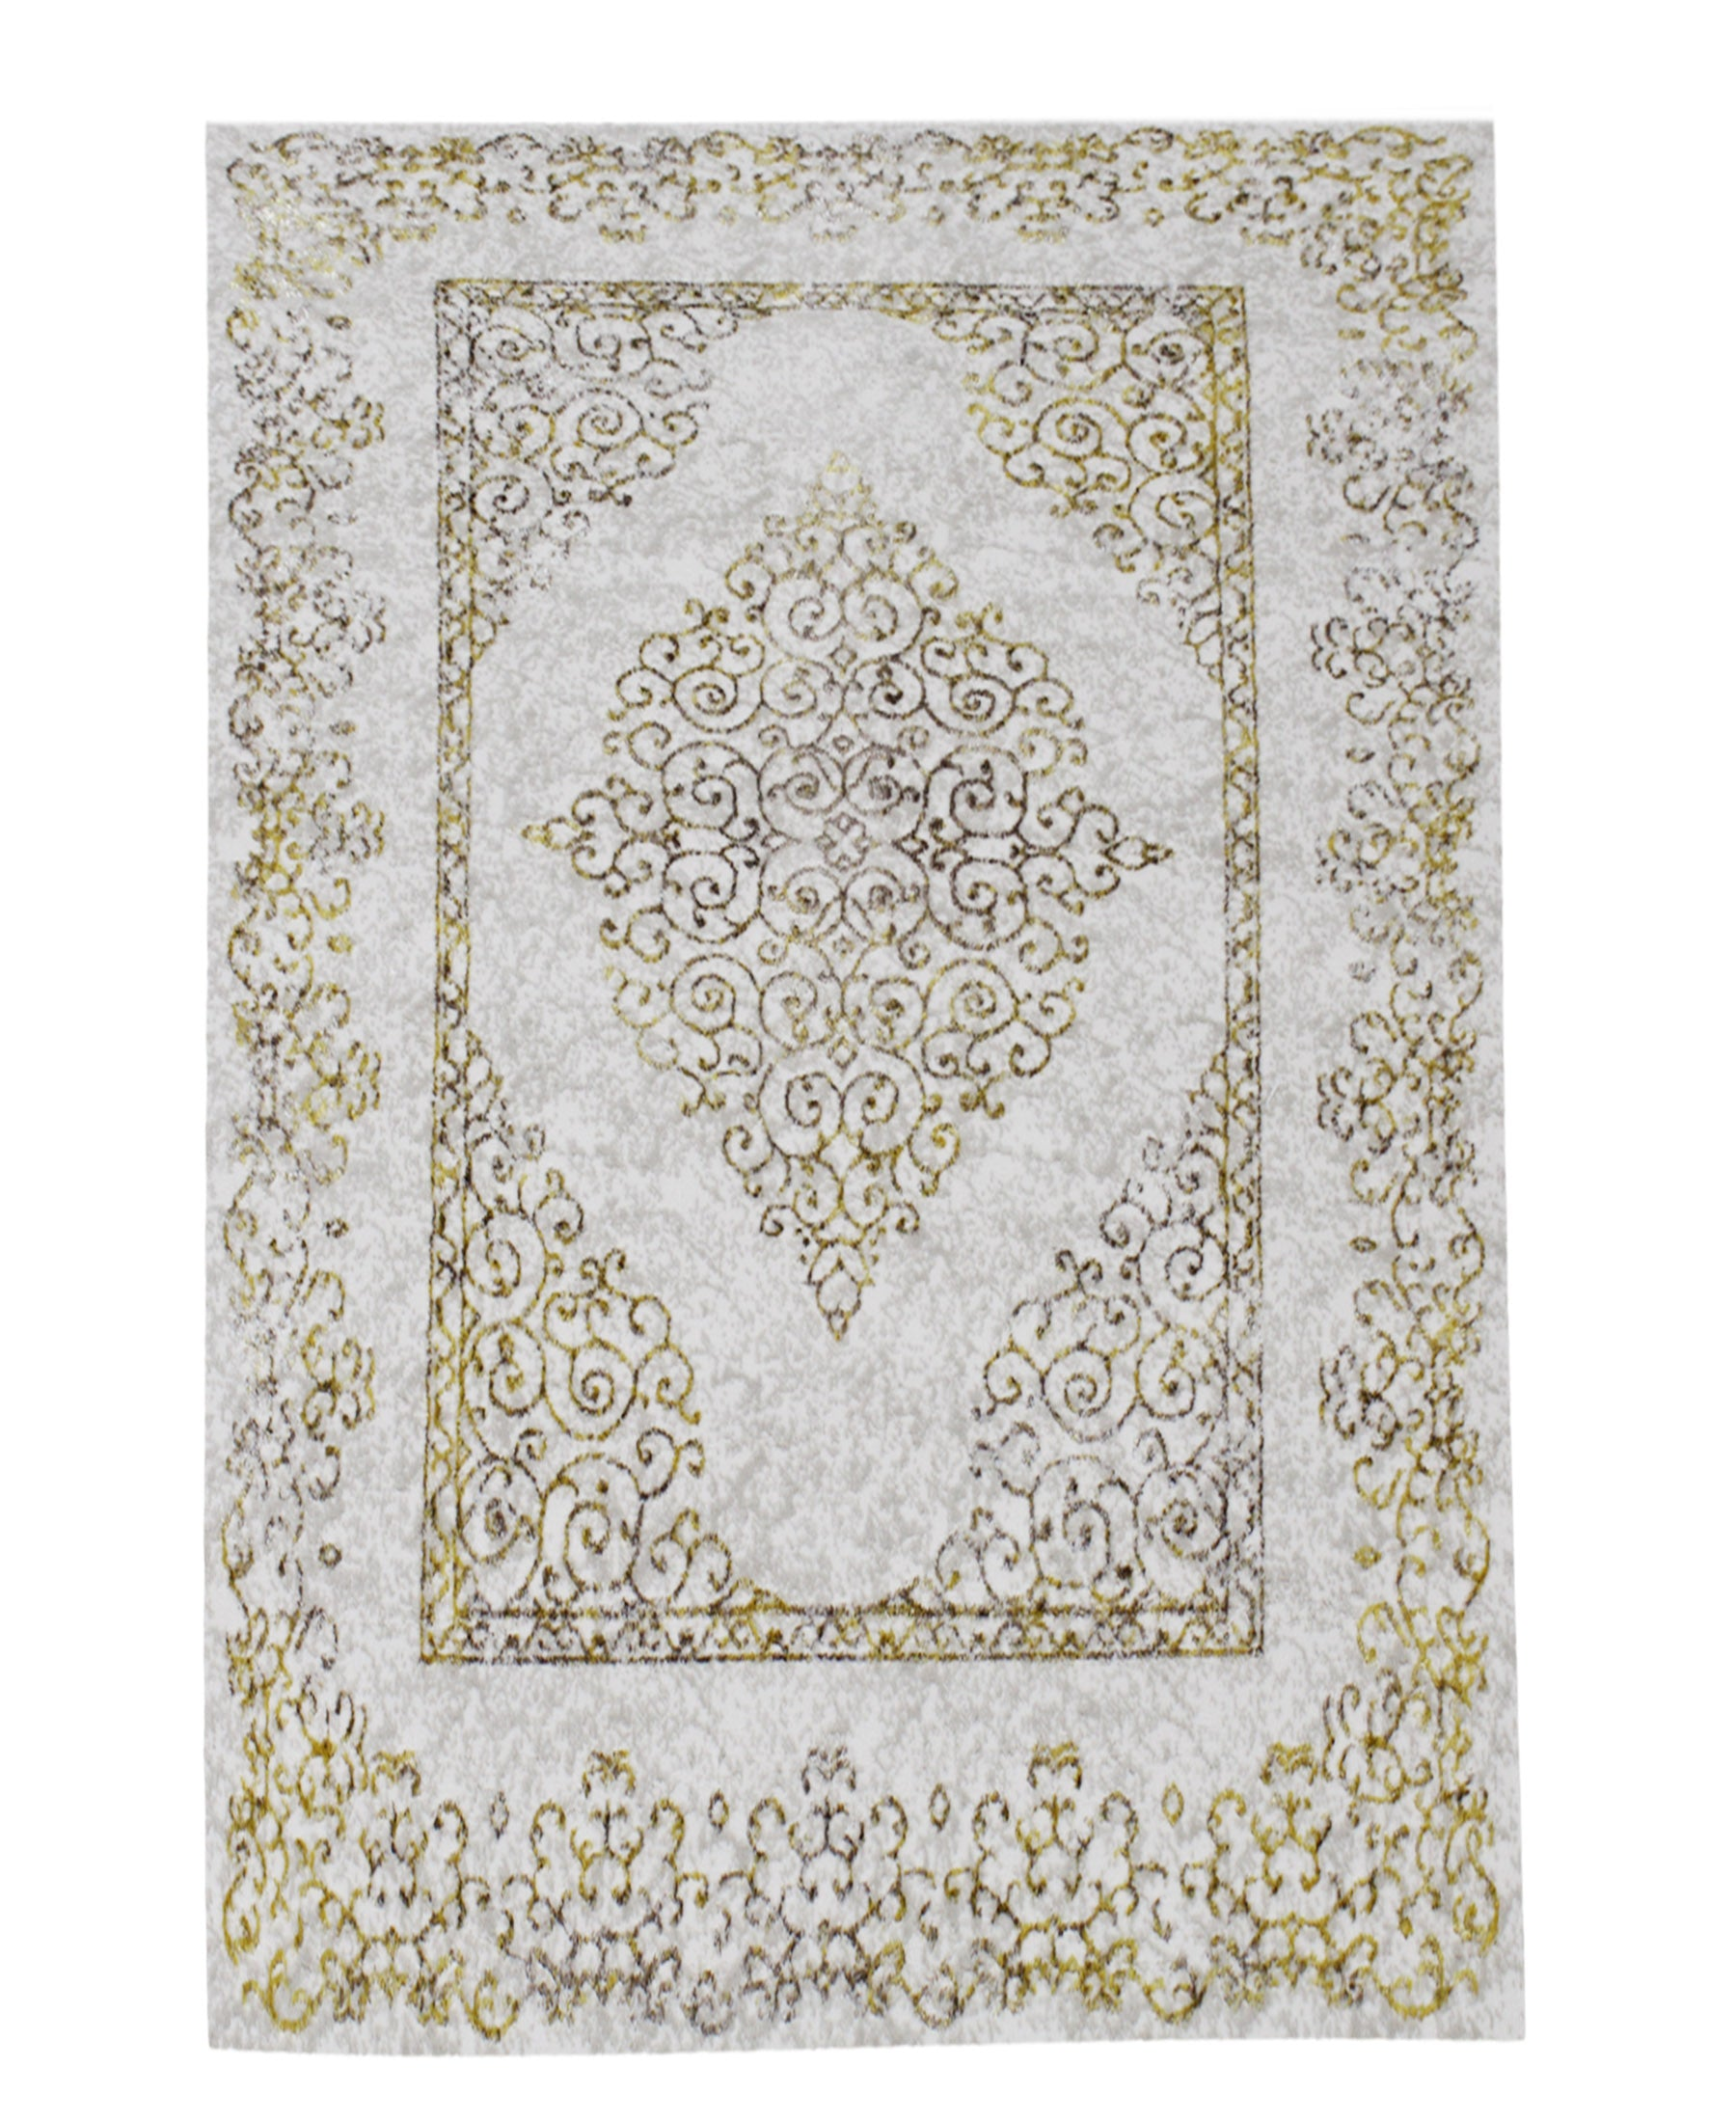 Bodrum Classic Carpet 2000mm X 2700mm - Brown